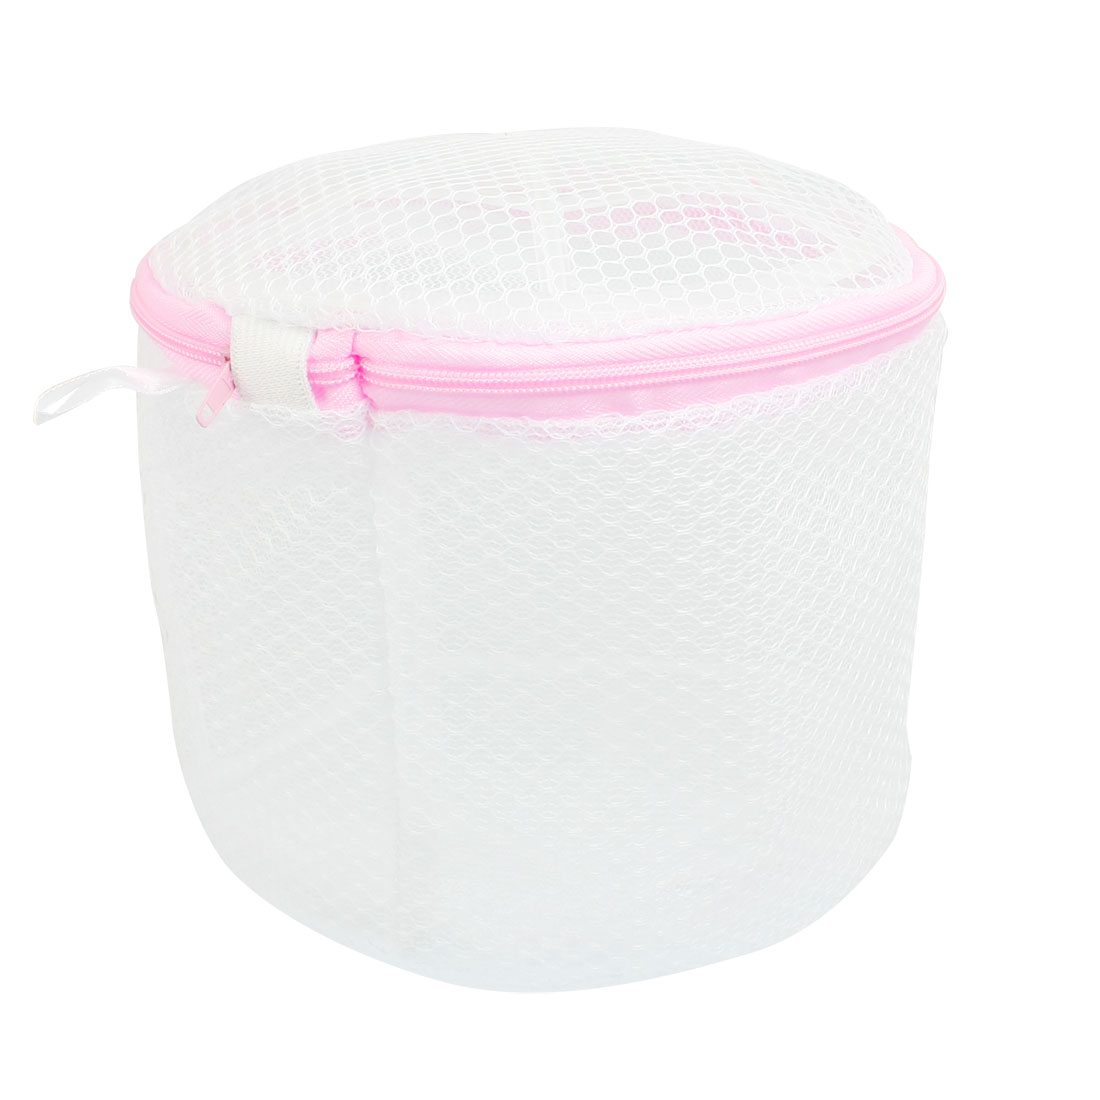 White Pink Underwear Stockings Folding Mesh Bag Holder Basket